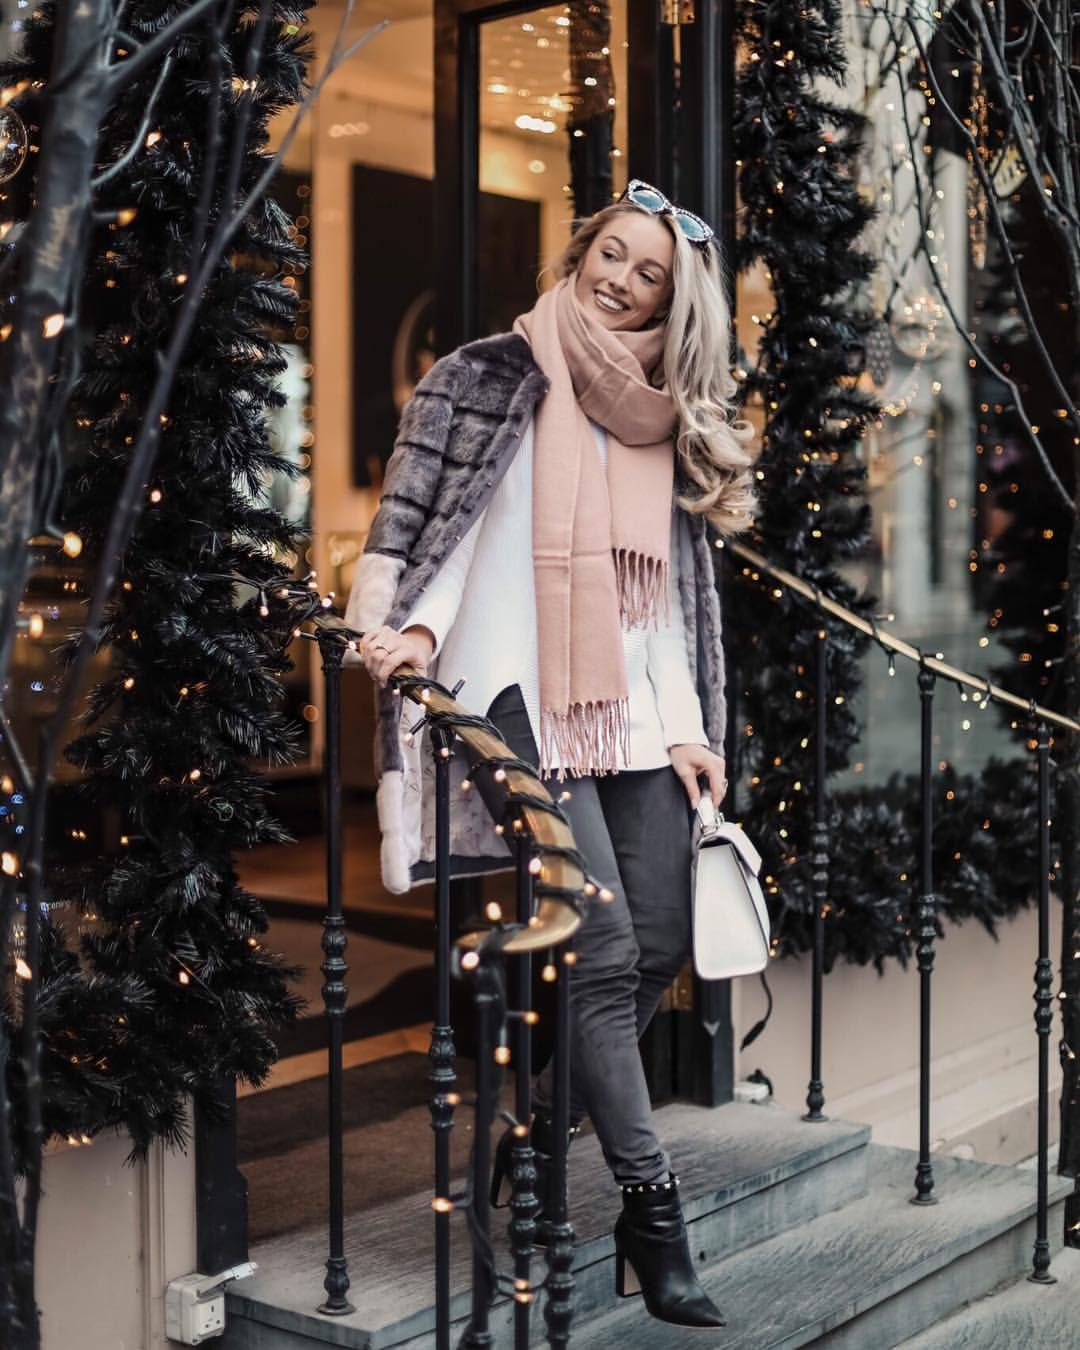 Pin by Jacqueline ♡ on Neverland in 2019 | Fashion mumblr ...